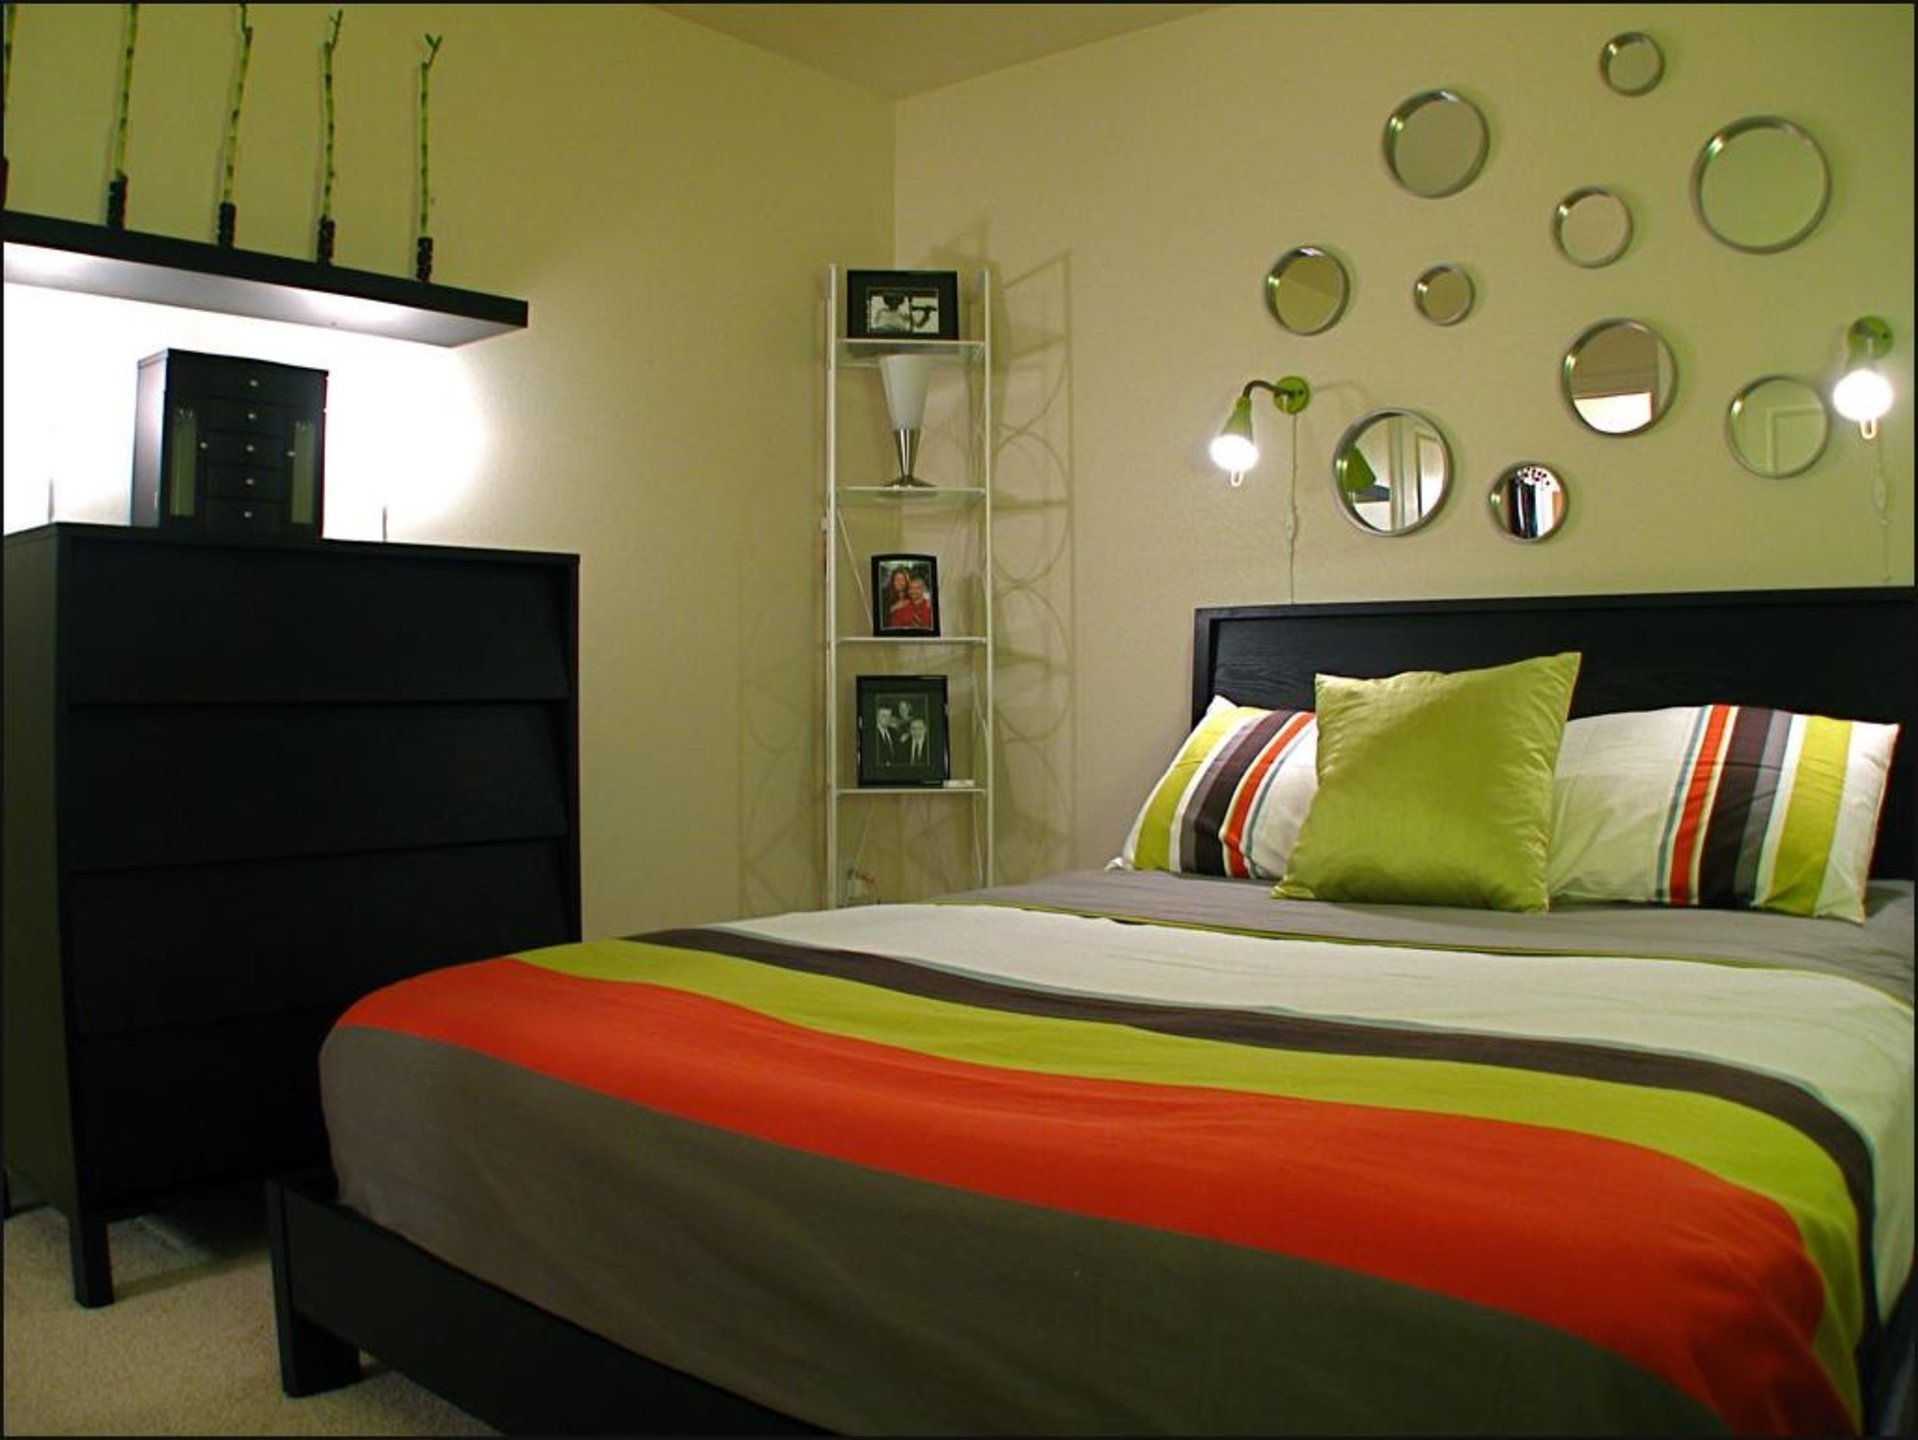 10 Most Popular Paint Ideas For Small Bedrooms 2021